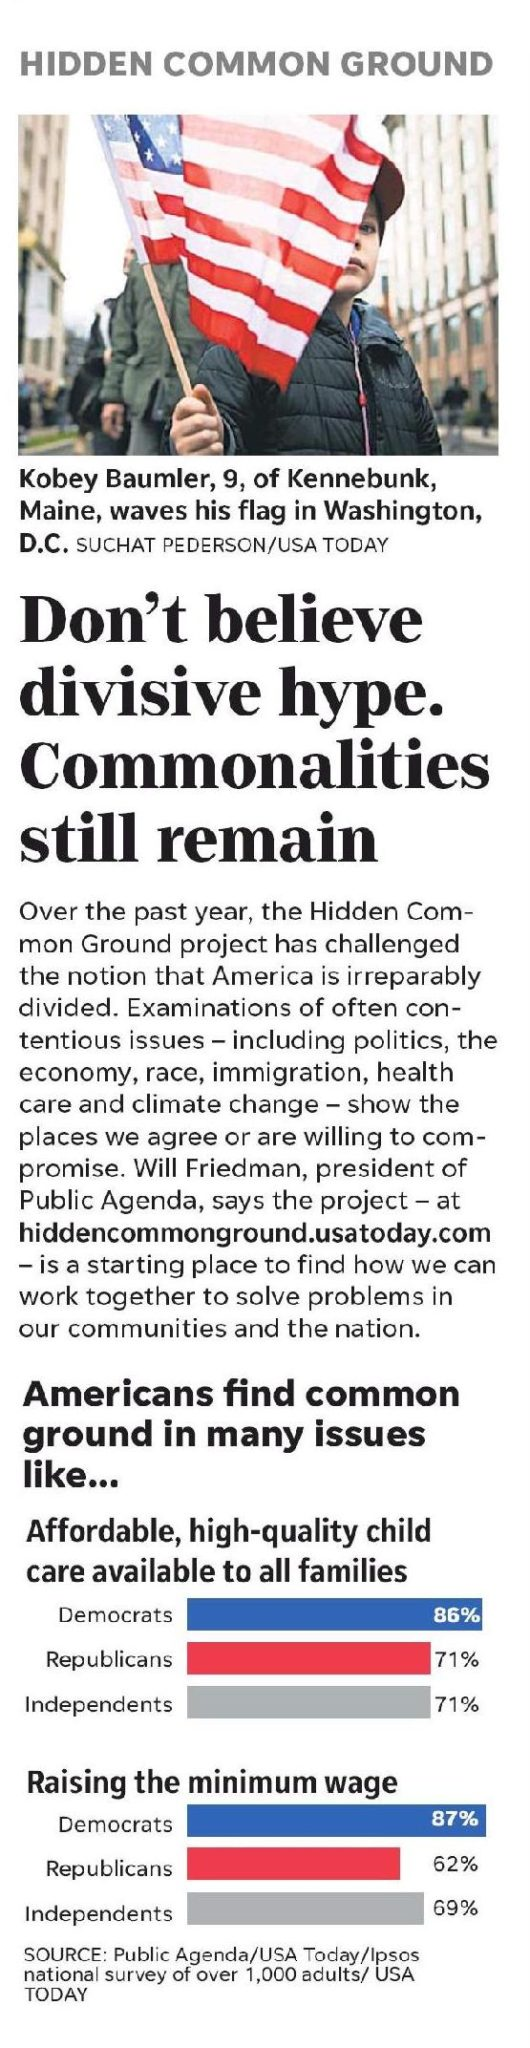 Strange Bedfellows USAT Front Page Page 001